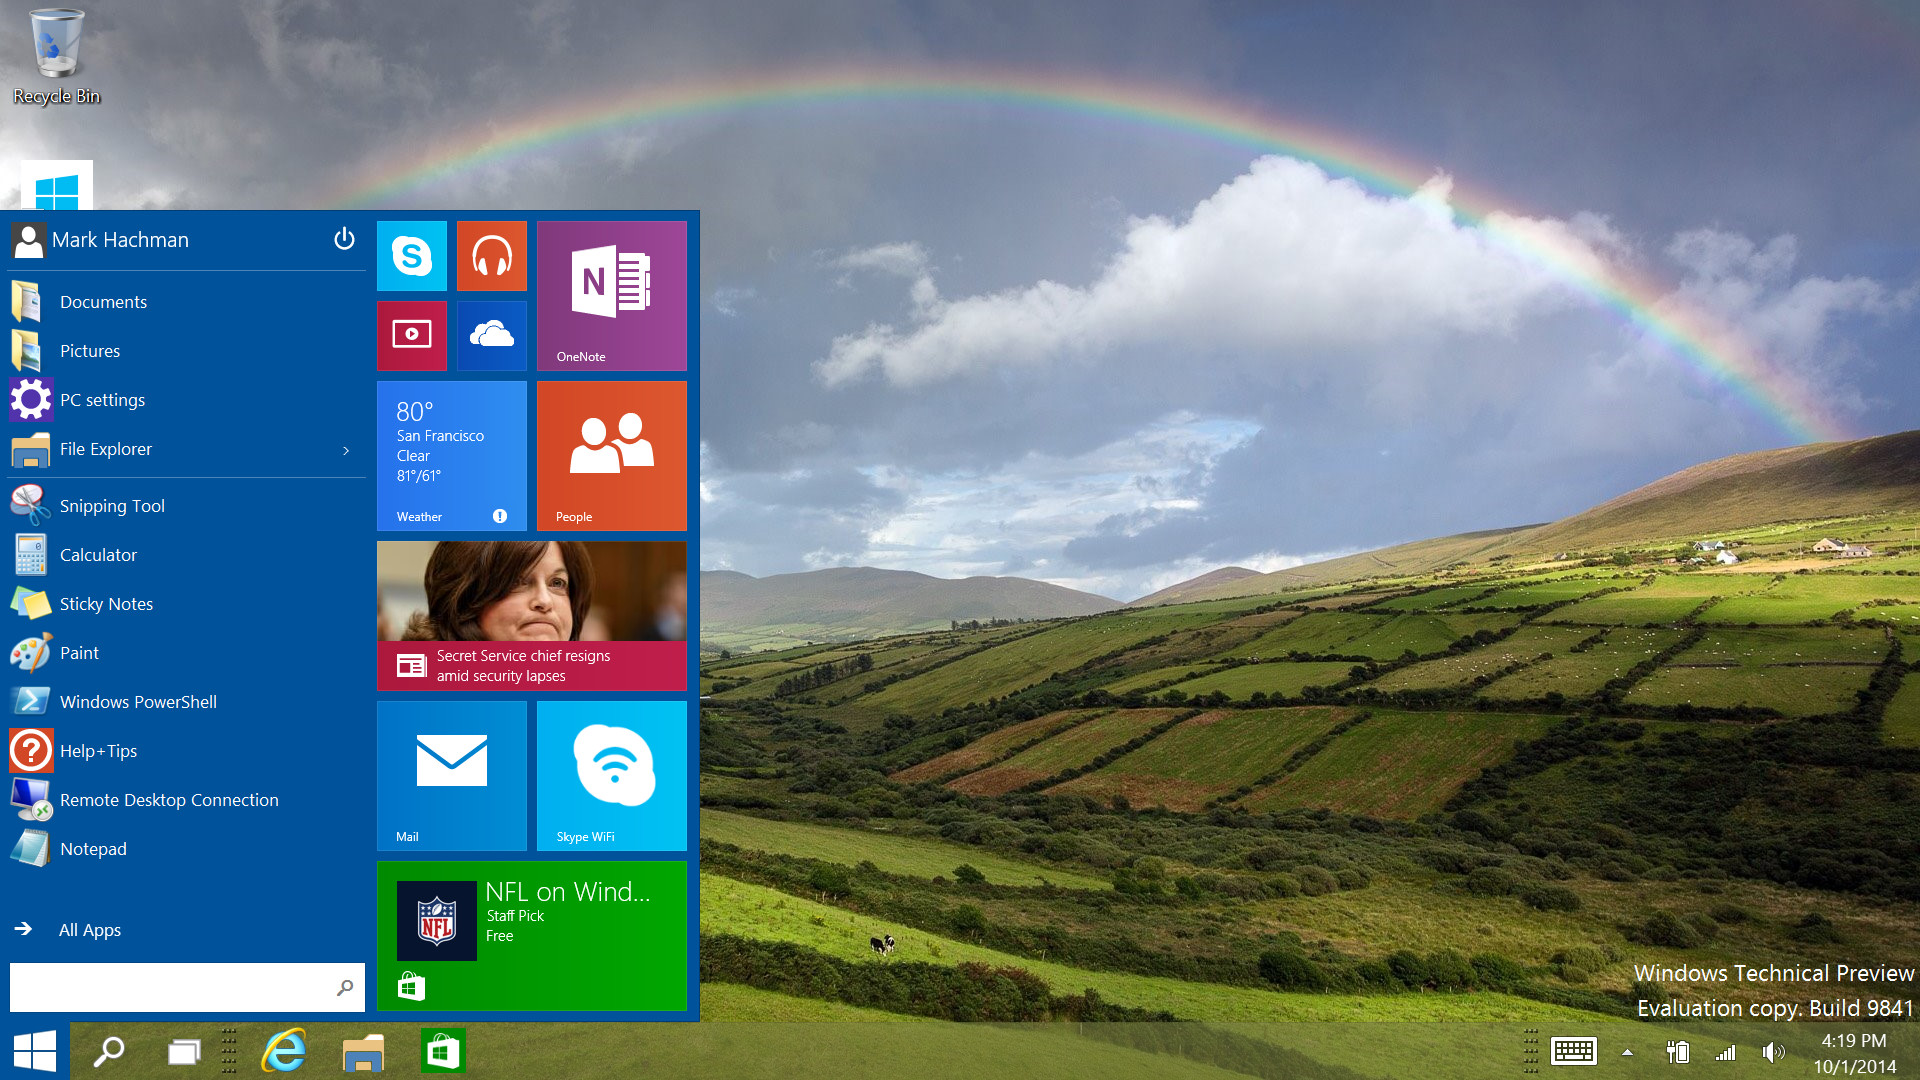 Windows 10 tips: Your first 30 minutes with the Technical Preview